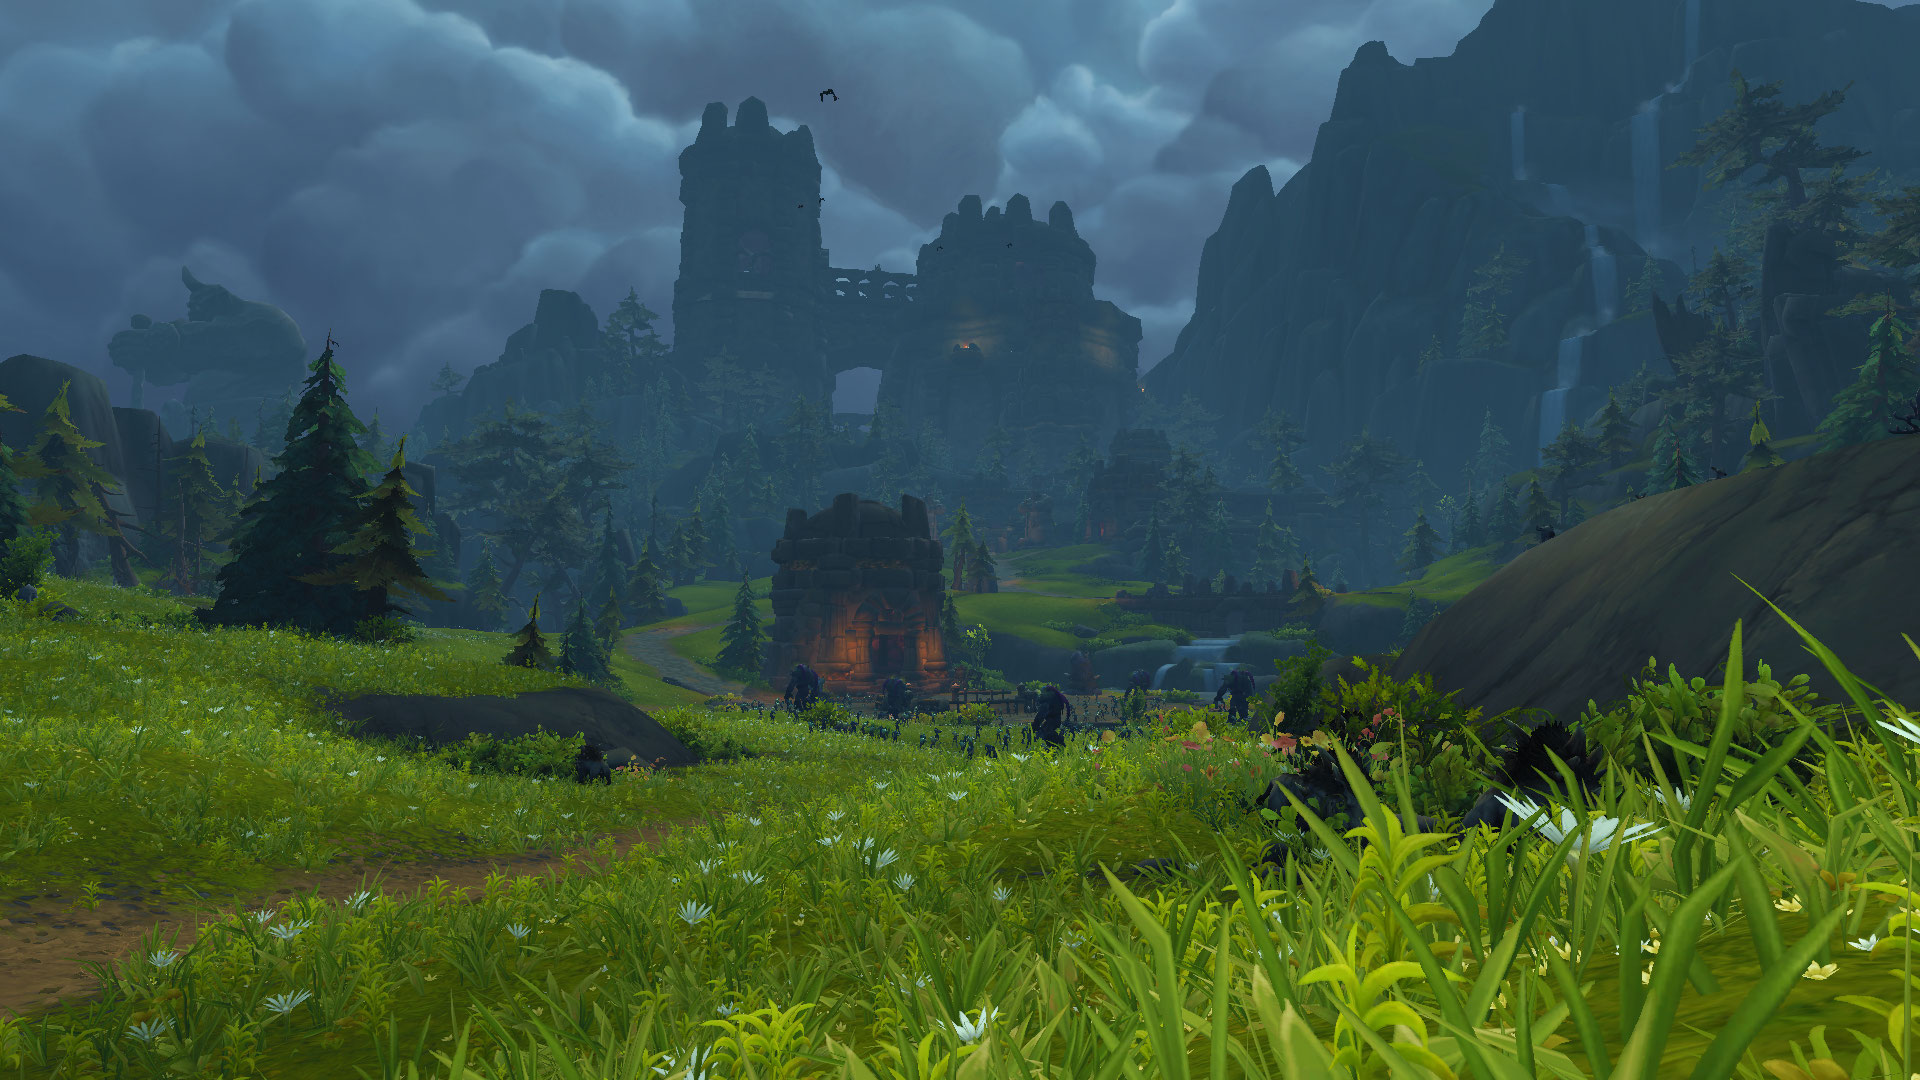 A screenshot showing the Exiles Reach area of WoW Shadowlands, with green fields in the foreground but an imposing castle and mountain in the background